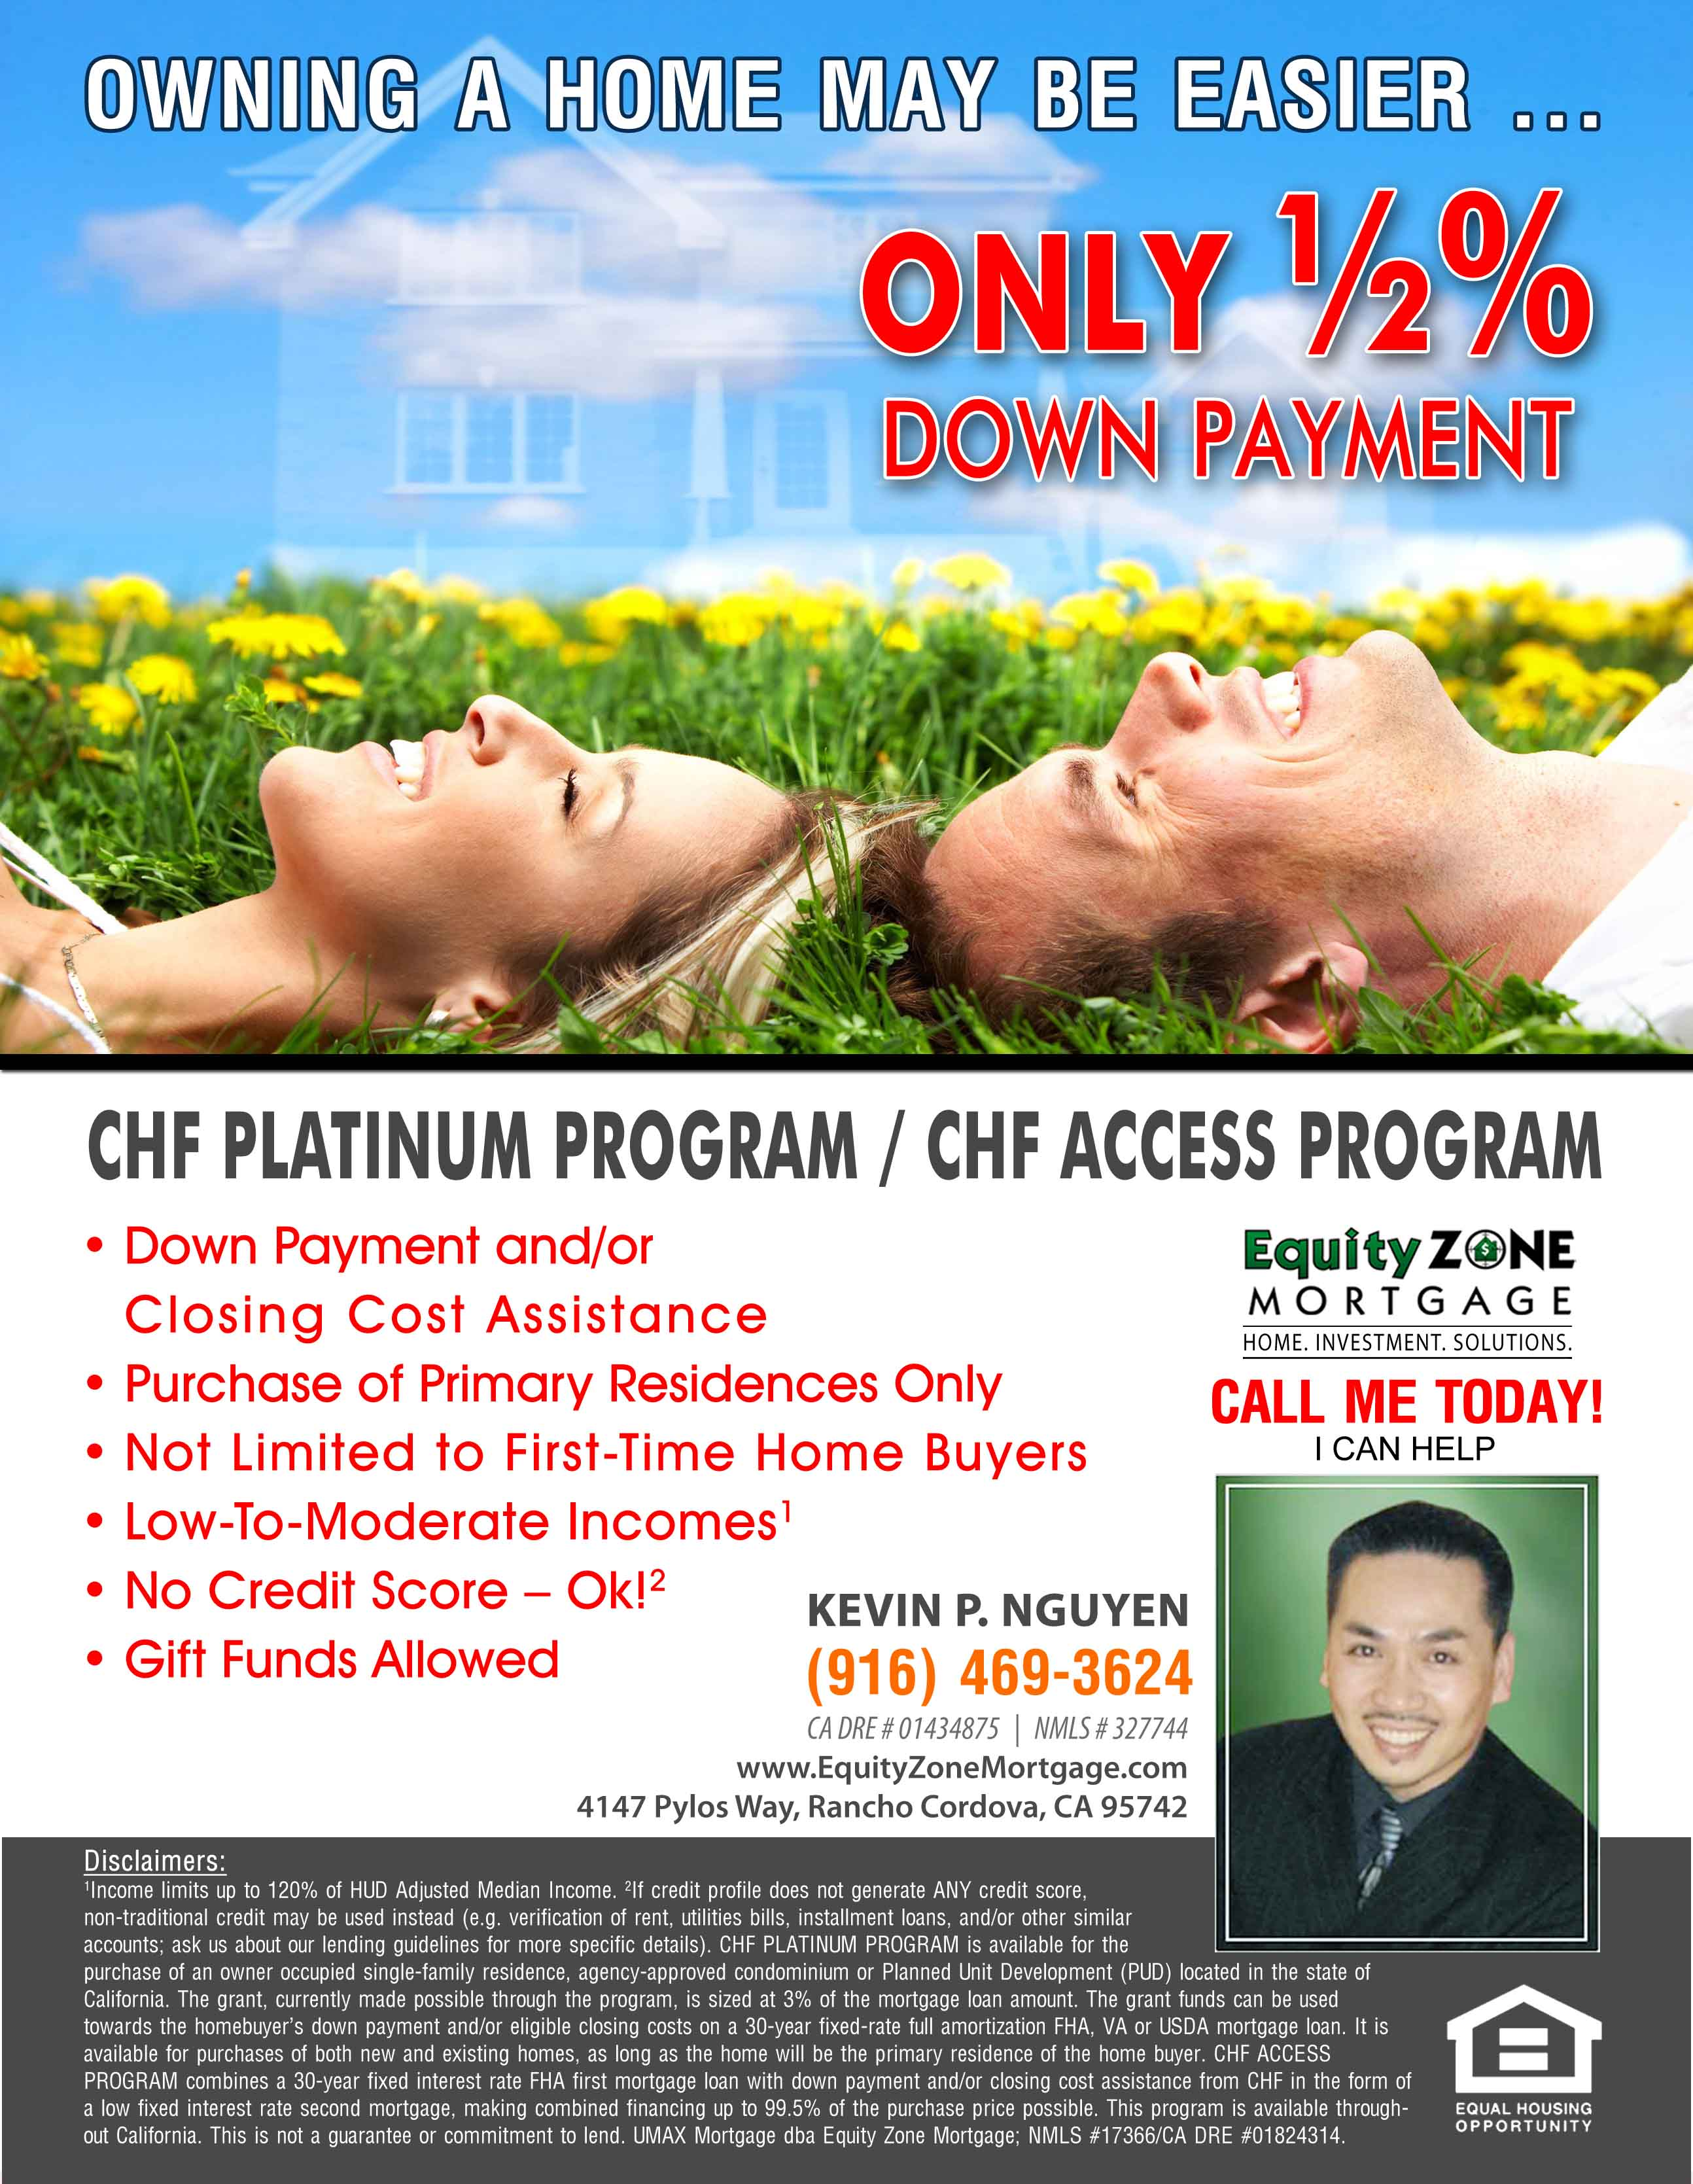 CHF Platinum Program / CHF Access Program ONLY ½ % DOWN PAYMENT Owning A Home May Be Easier...Down Payment and/or Closing Cost Assistance Purchase of Primary Residences Only •	Not Limited to First-Time Homebuyers •	Low-To-Moderate Incomes1 •	No Credit Score – Ok!2 •	Gift Funds - Allowed 1Income limits up to 120% of HUD Adjusted Median Income. 2If credit profile does not generate ANY credit score, non-traditional credit may be used instead (e.g. verification of rent, utilities bills, installment loans, and/or other similar accounts; ask us about our lending guidelines for more specific details). CHF PLATINUM PROGRAM is available for the purchase of an owner occupied single-family residence, agency-approved condominium or Planned Unit Development (PUD) located in the state of California. The grant, currently made possible through the program, is sized at 3% of the mortgage loan amount. The grant funds can be used towards the homebuyer's down payment and/or eligible closing costs on a 30-year fixed-rate full amortization FHA, VA or USDA mortgage loan. It is available for purchases of both new and existing homes, as long as the home will be the primary residence of the homebuyer. CHF ACCESS PROGRAM combines a 30-year Fixed Interest Rate FHA first mortgage loan with down payment and/or closing cost assistance from CHF in the form of a low fixed interest rate second mortgage, making combined financing up to 99.5% of the purchase price possible. This program is available throughout California. This is not a guarantee or commitment to lend. UMAX Mortgage dba Equity Zone Mortgage; NMLS #17366/CA DRE #01824314.